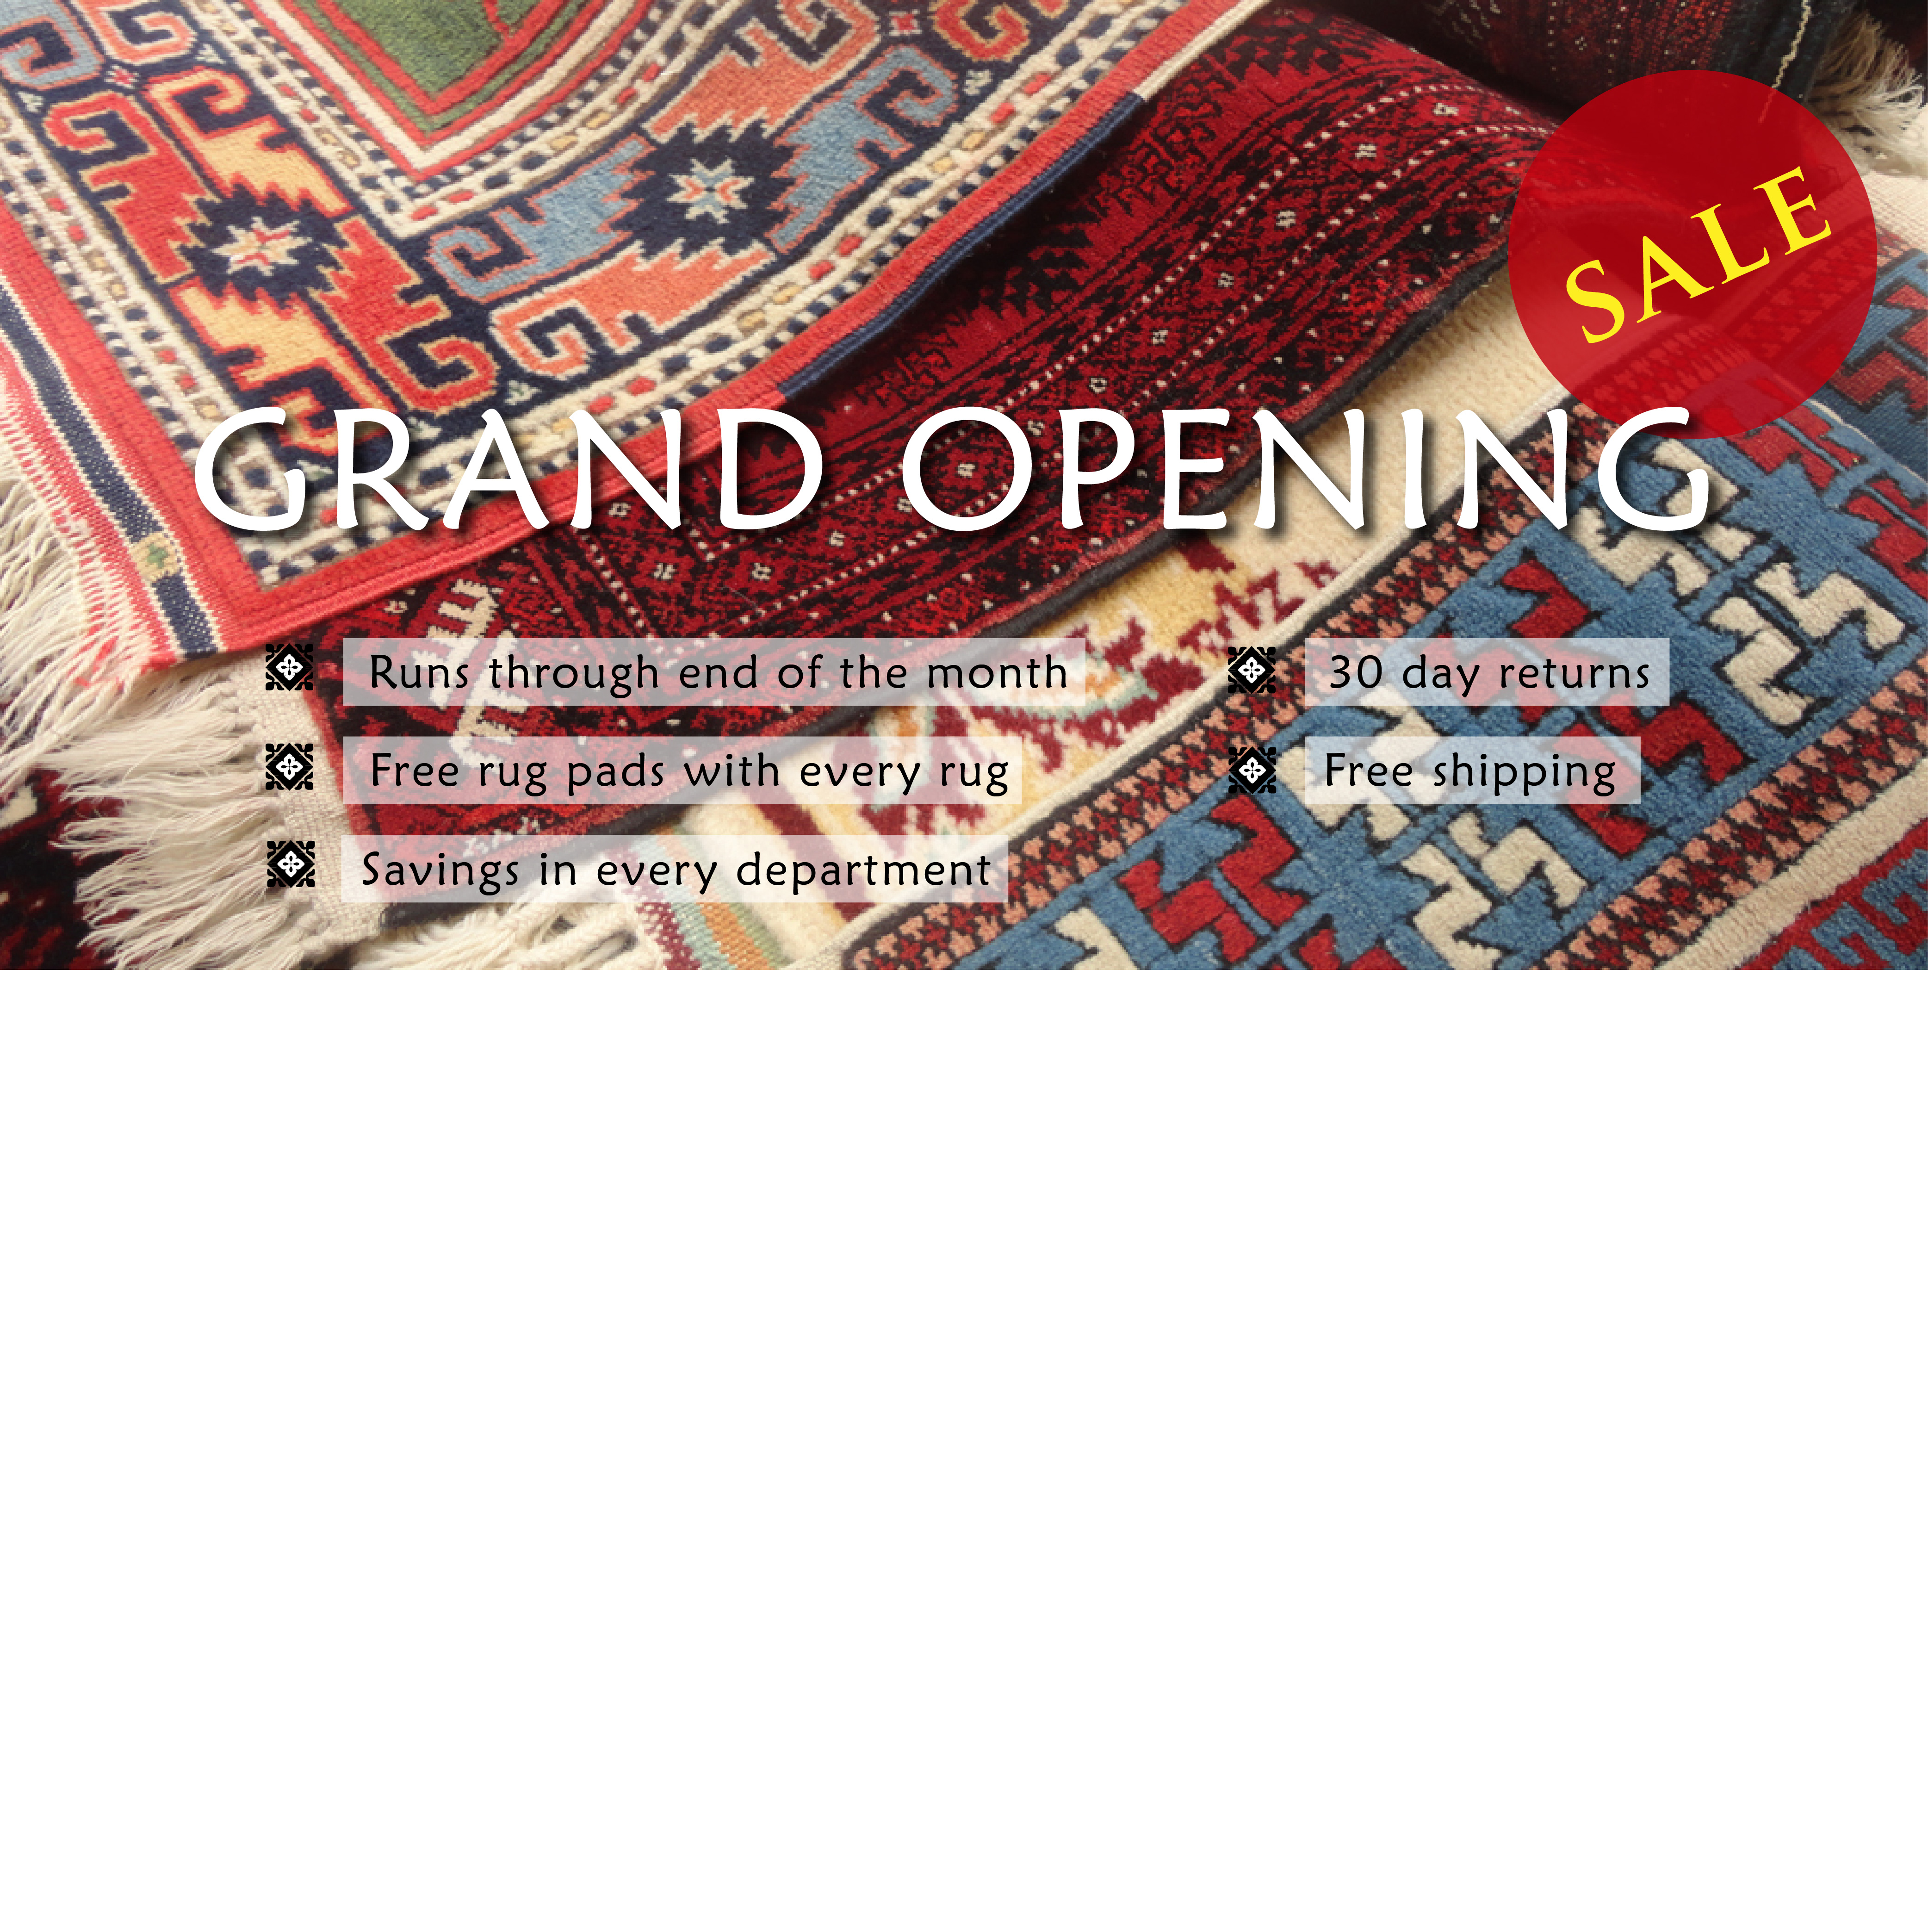 Banner Ad Design By Renata For Grand Opening Needed Incredible Rugs And Decor